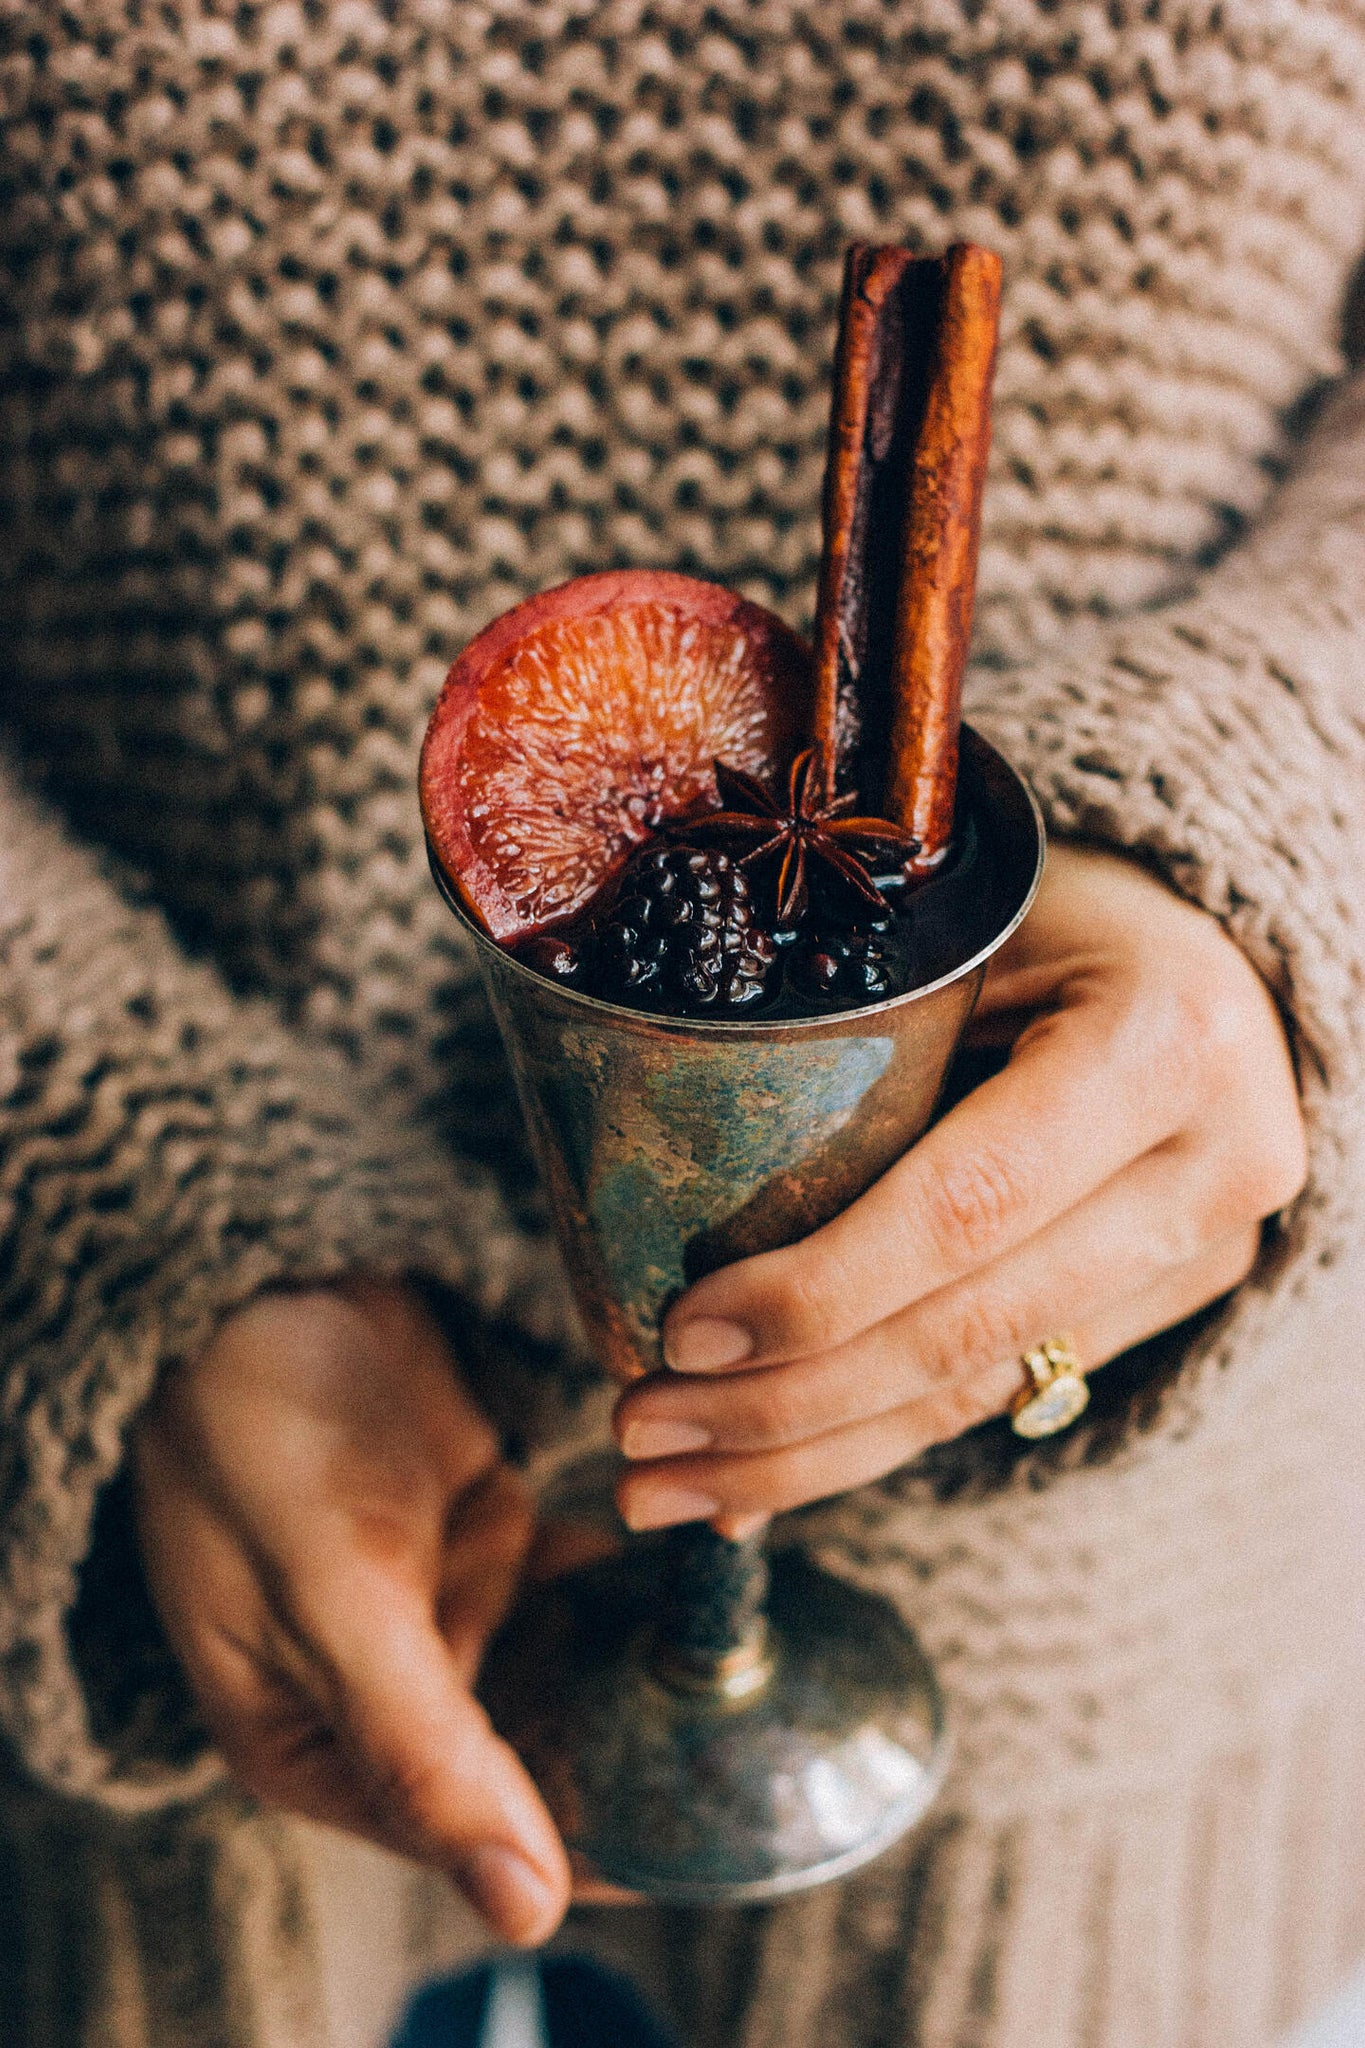 blackberry gluhwein mulled wine